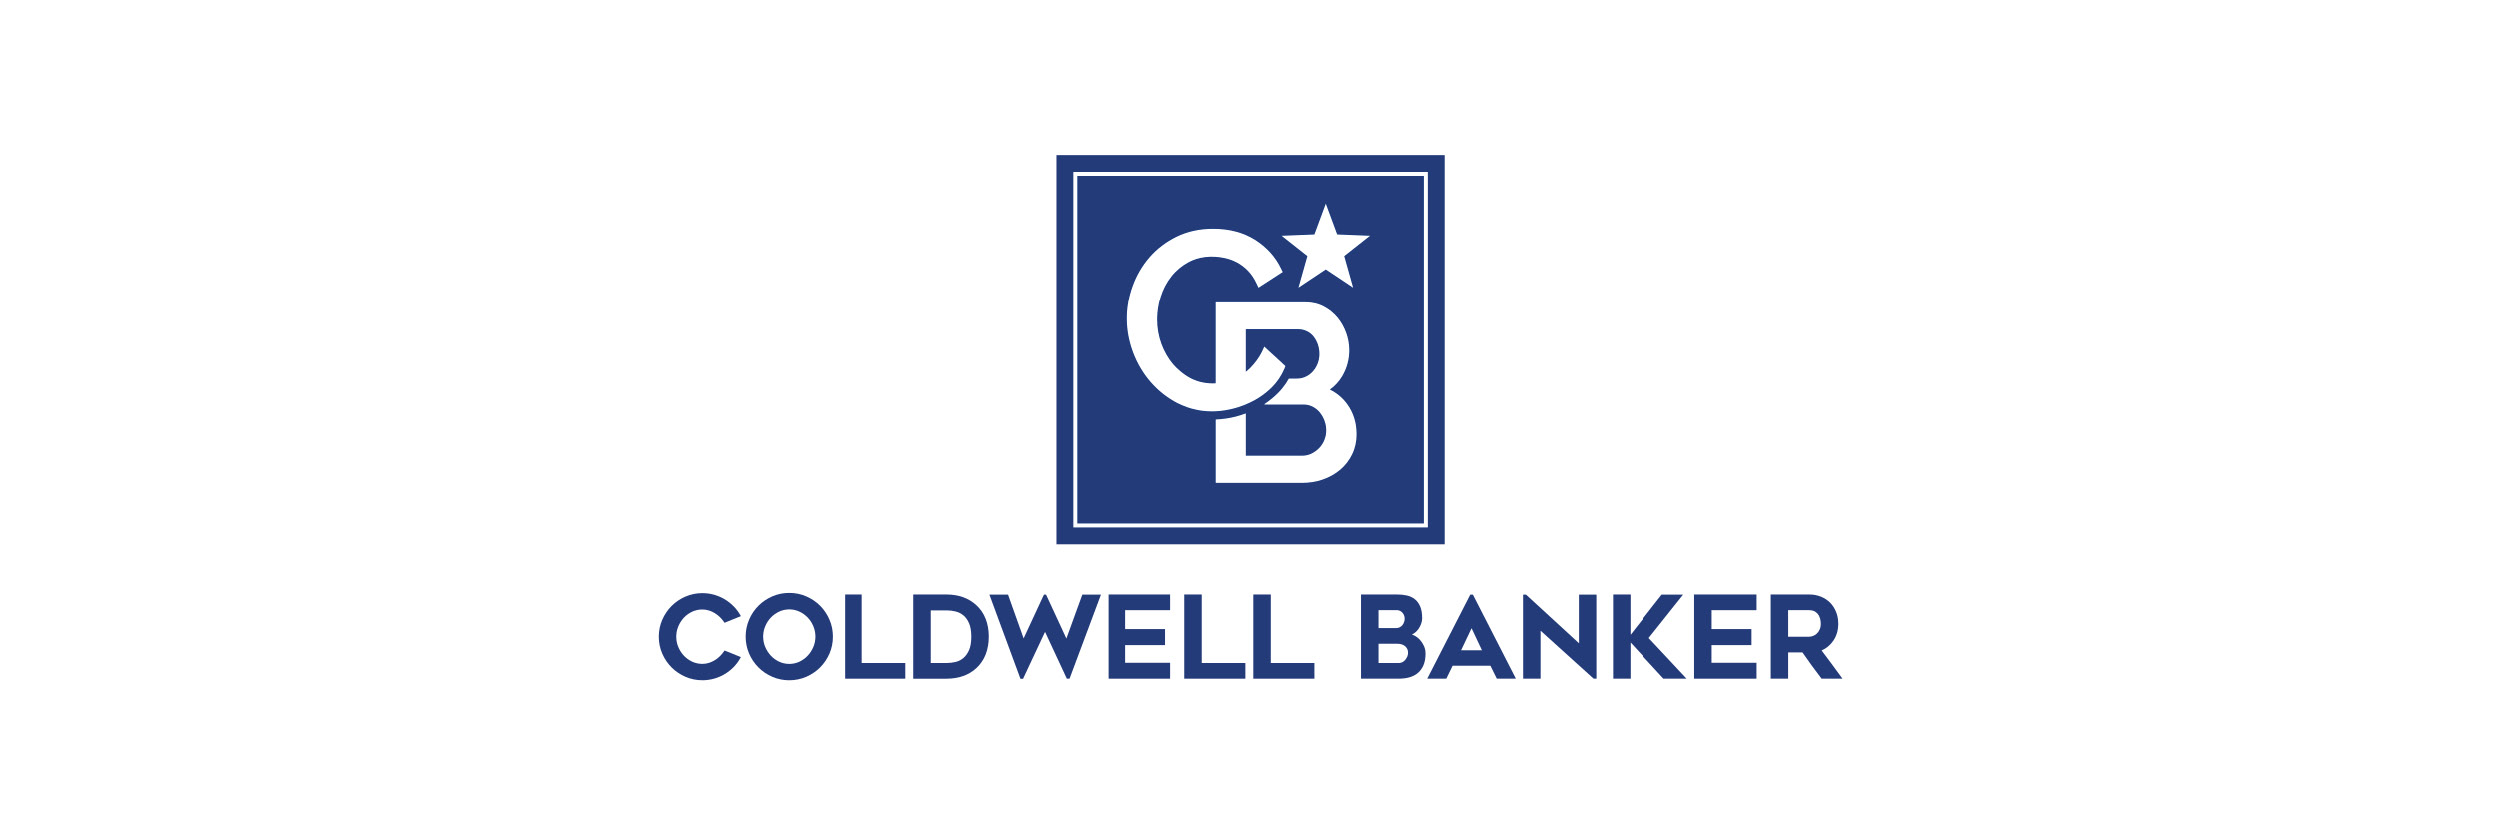 Announcing the Brokerage Team for Highland Bridge Custom Homes: Coldwell Banker